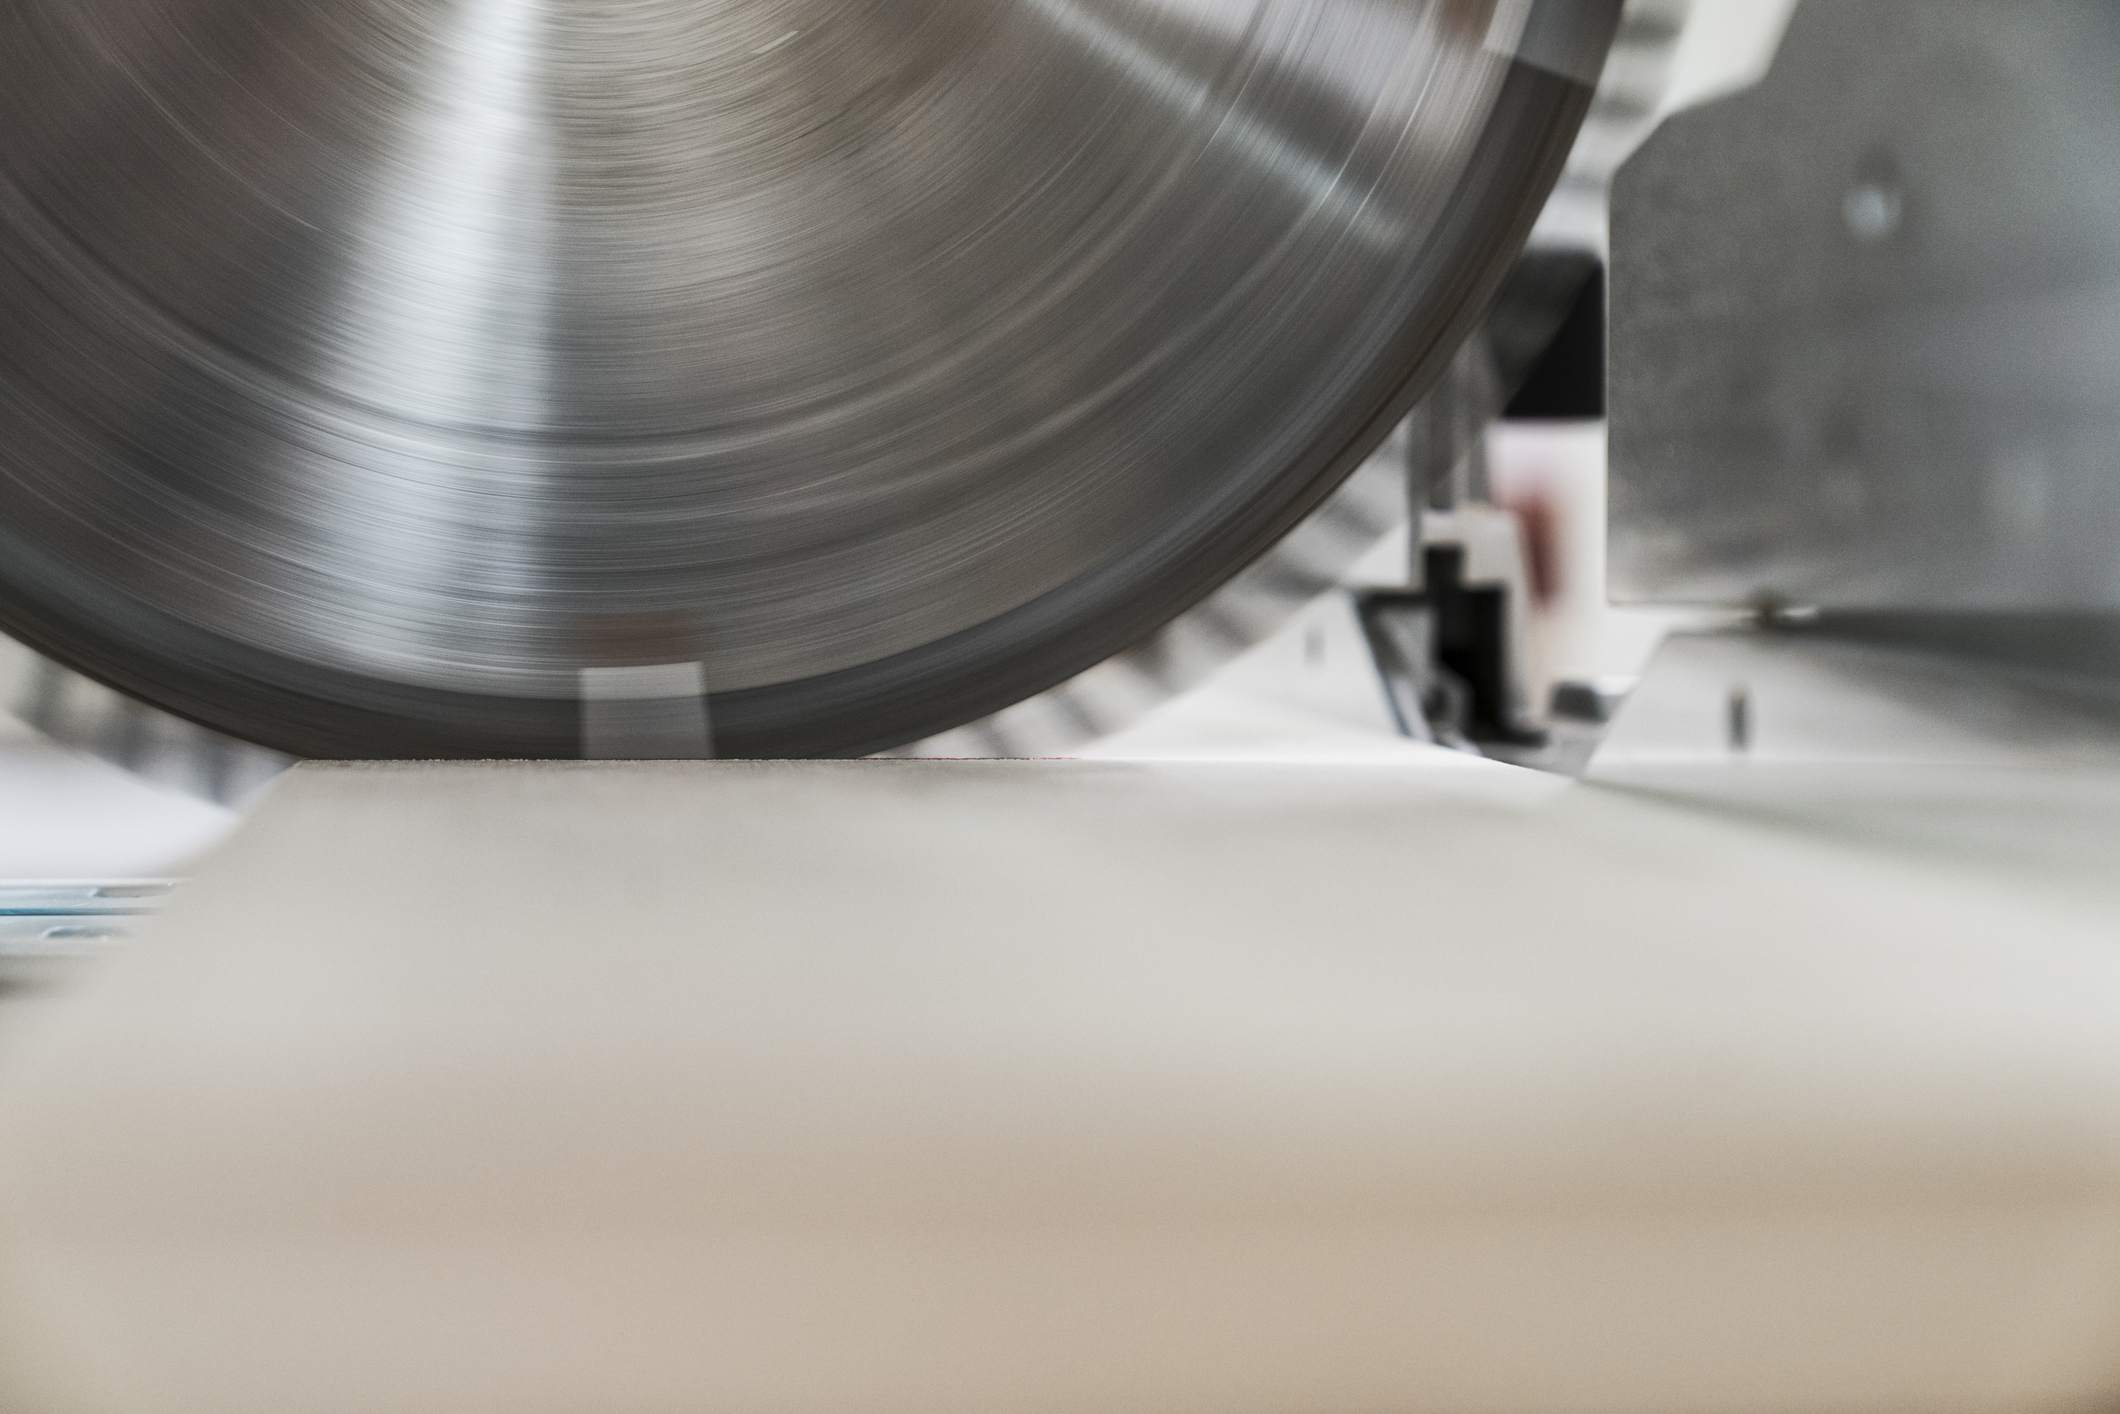 Close up of a radial saw blade